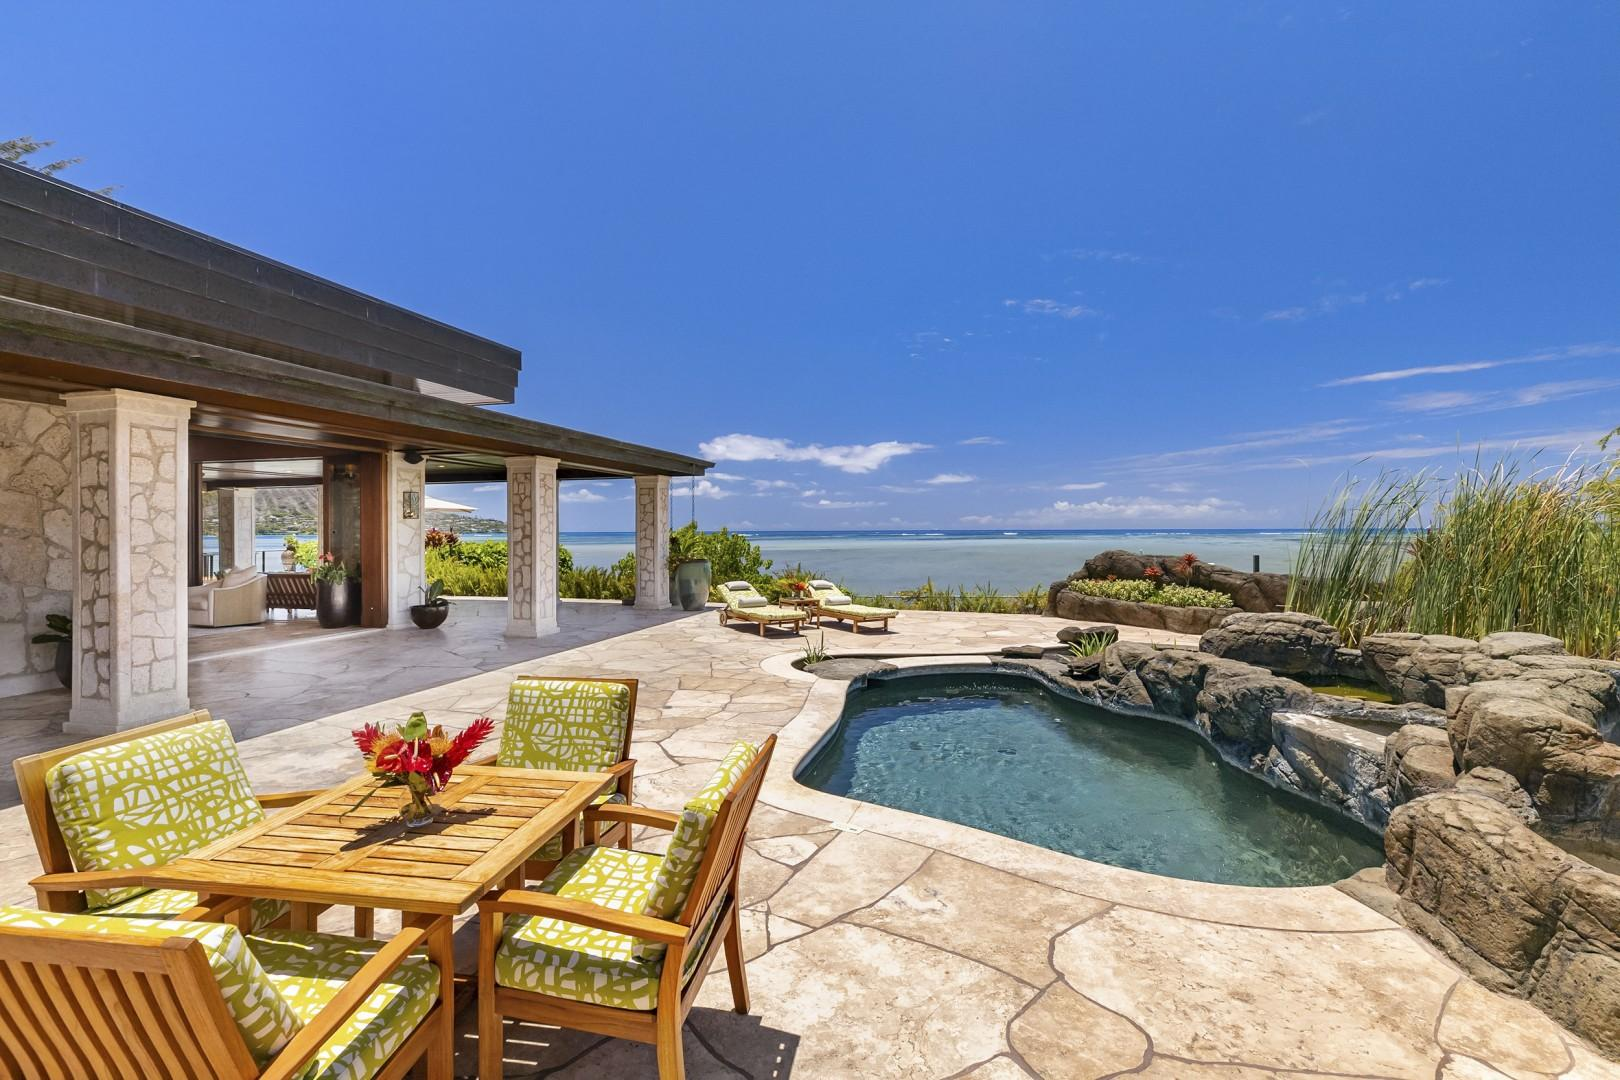 Small Dipping Pool with ocean views spacious surrounding deck